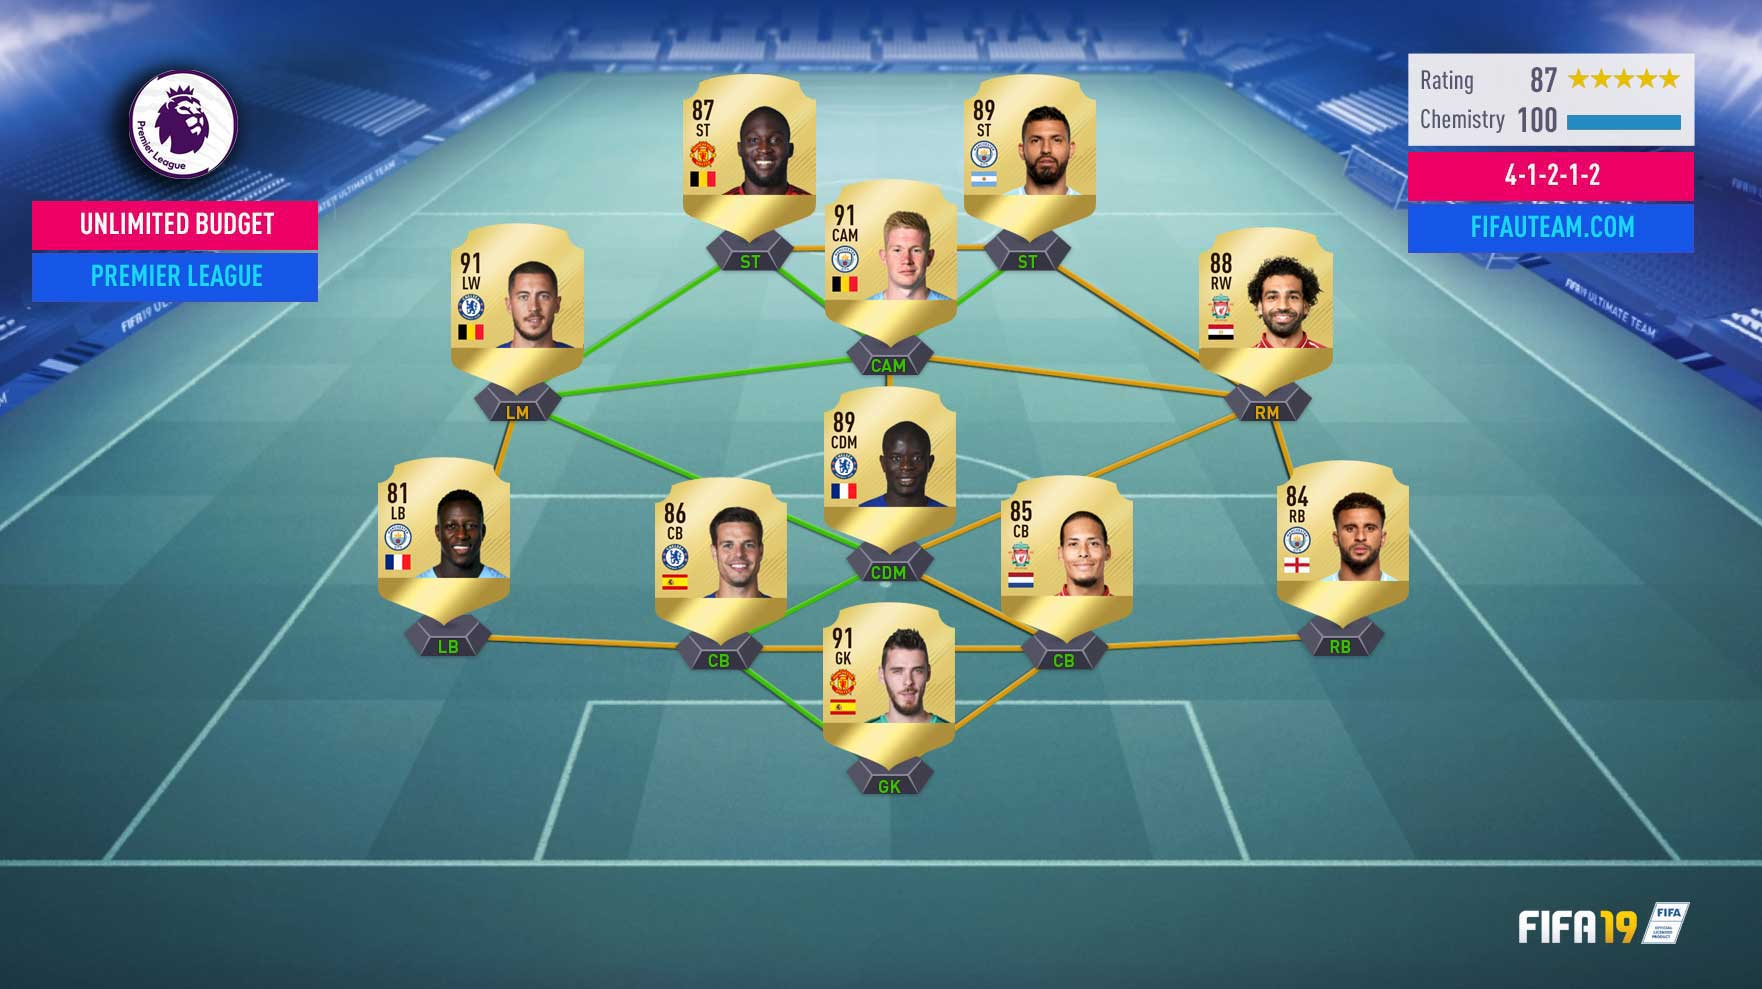 The Best FIFA 19 League to Play on Ultimate Team